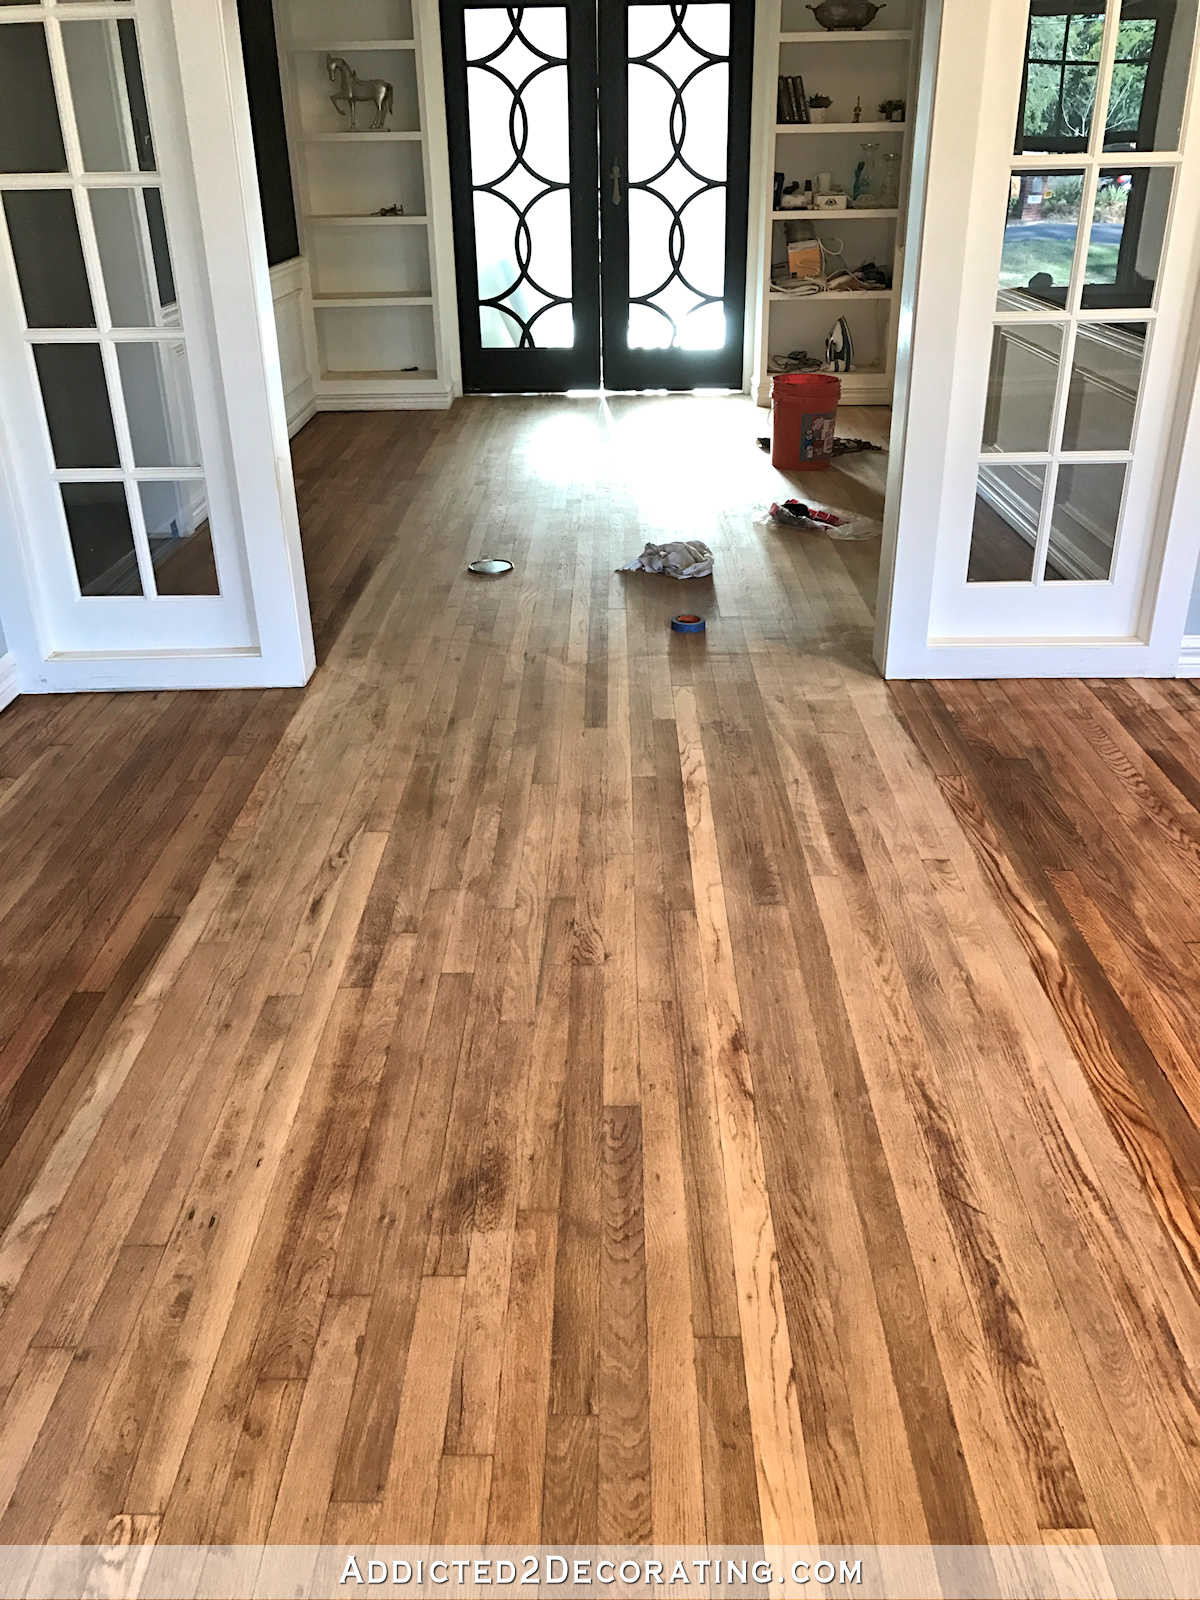 cost to install and finish hardwood floors of adventures in staining my red oak hardwood floors products process intended for staining red oak hardwood floors 5 music room wood conditioner